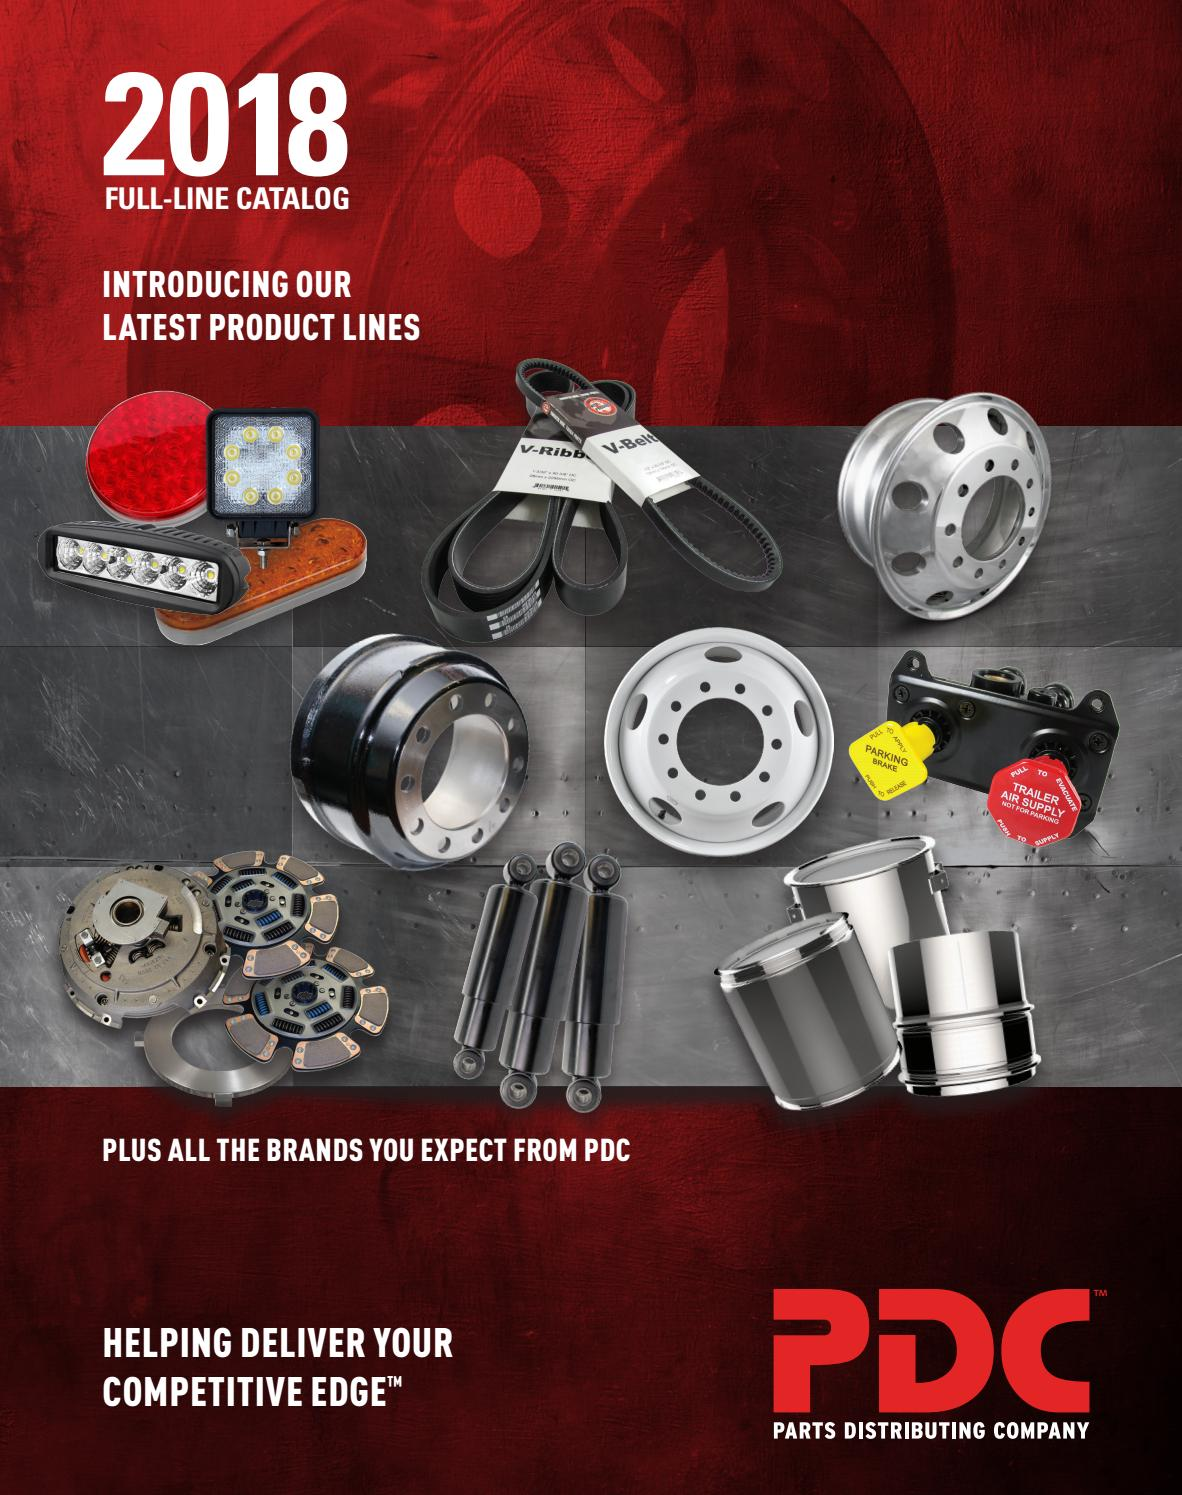 Pdc 2018 Full Line Catalog By Fleetpride21 Issuu Kampampn Filter Udara Toyota Kijang Karburator